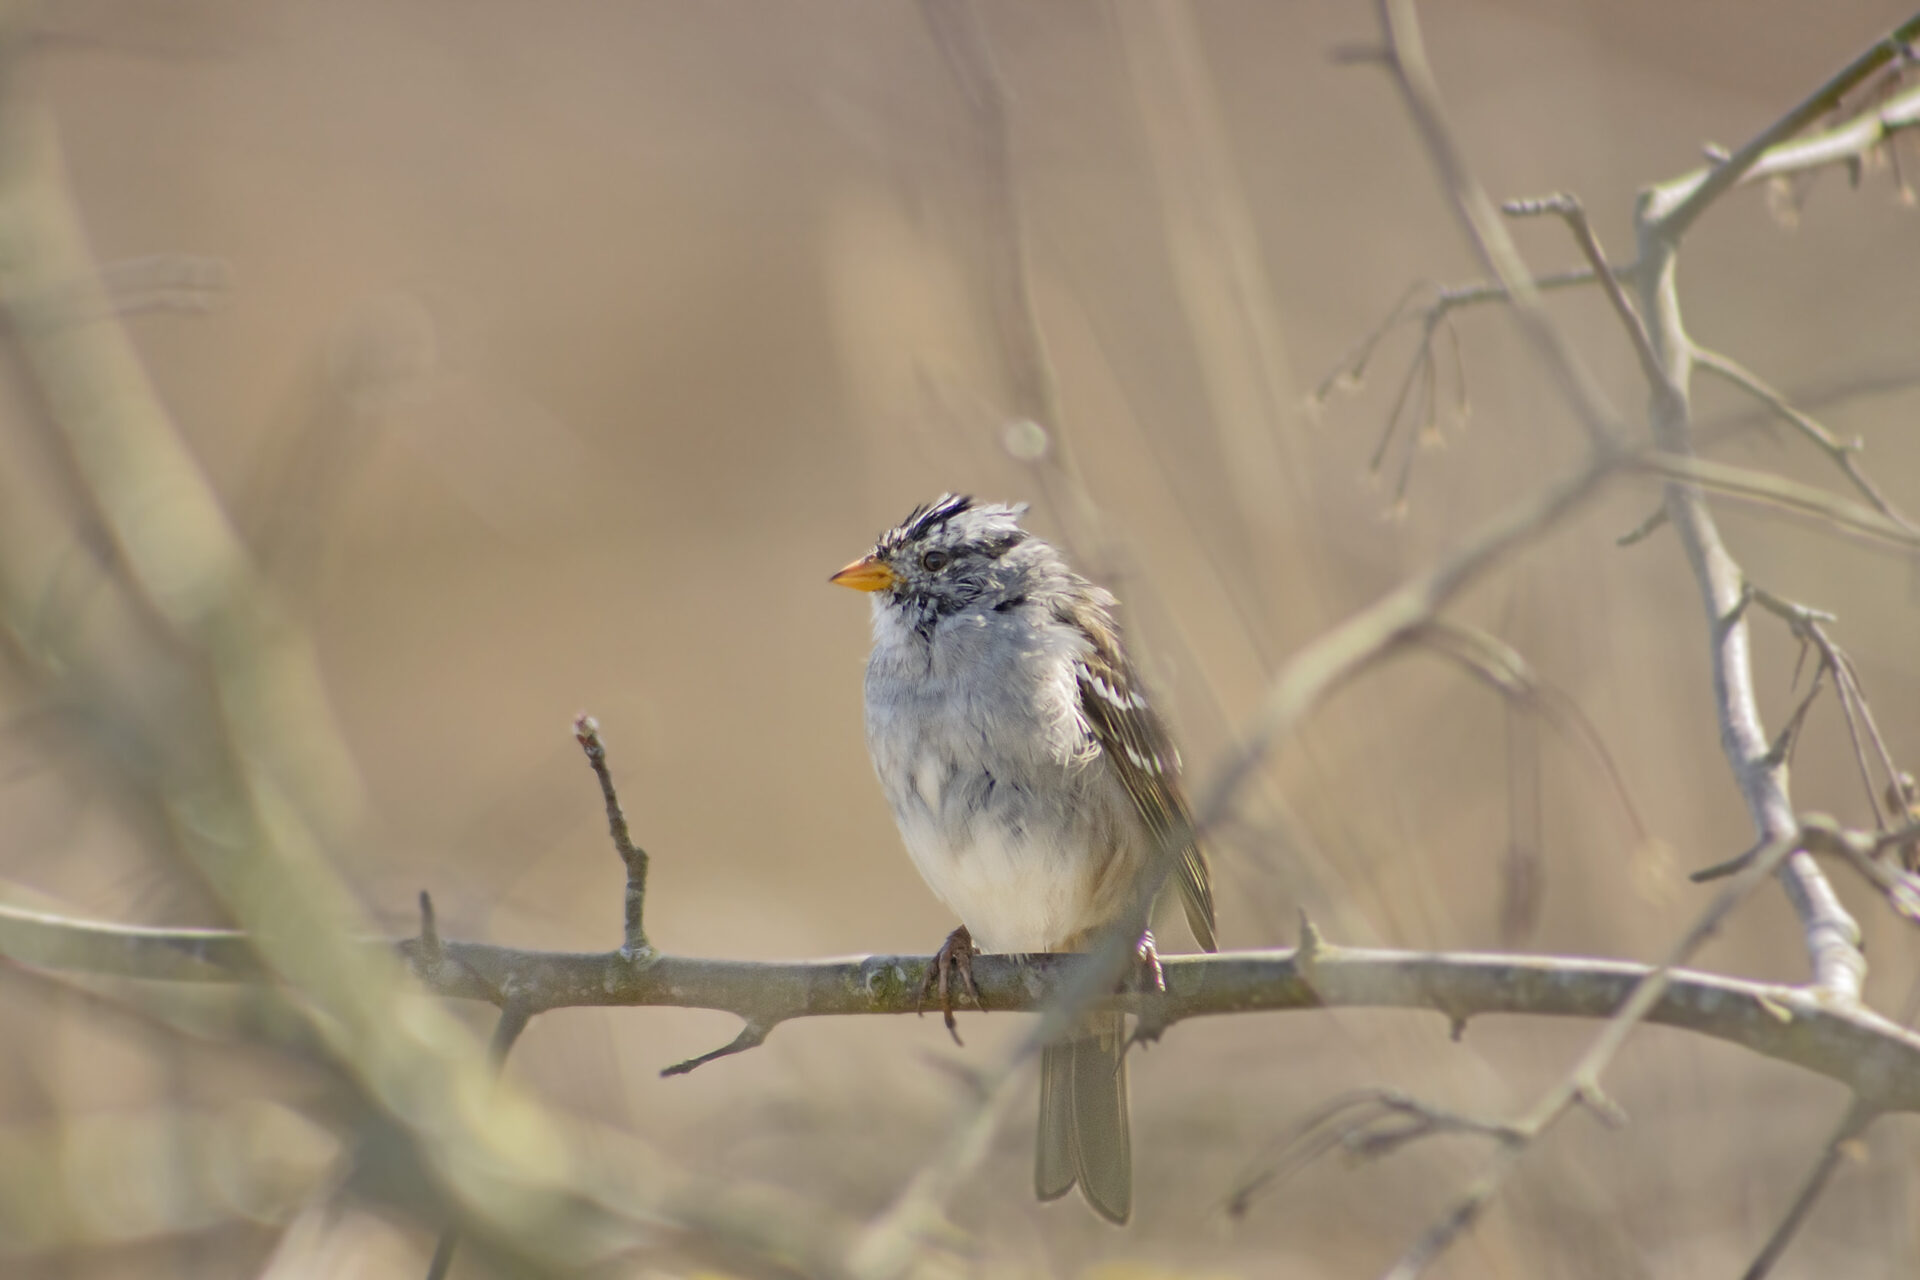 White Crowned Sparrow, April 5, 2021